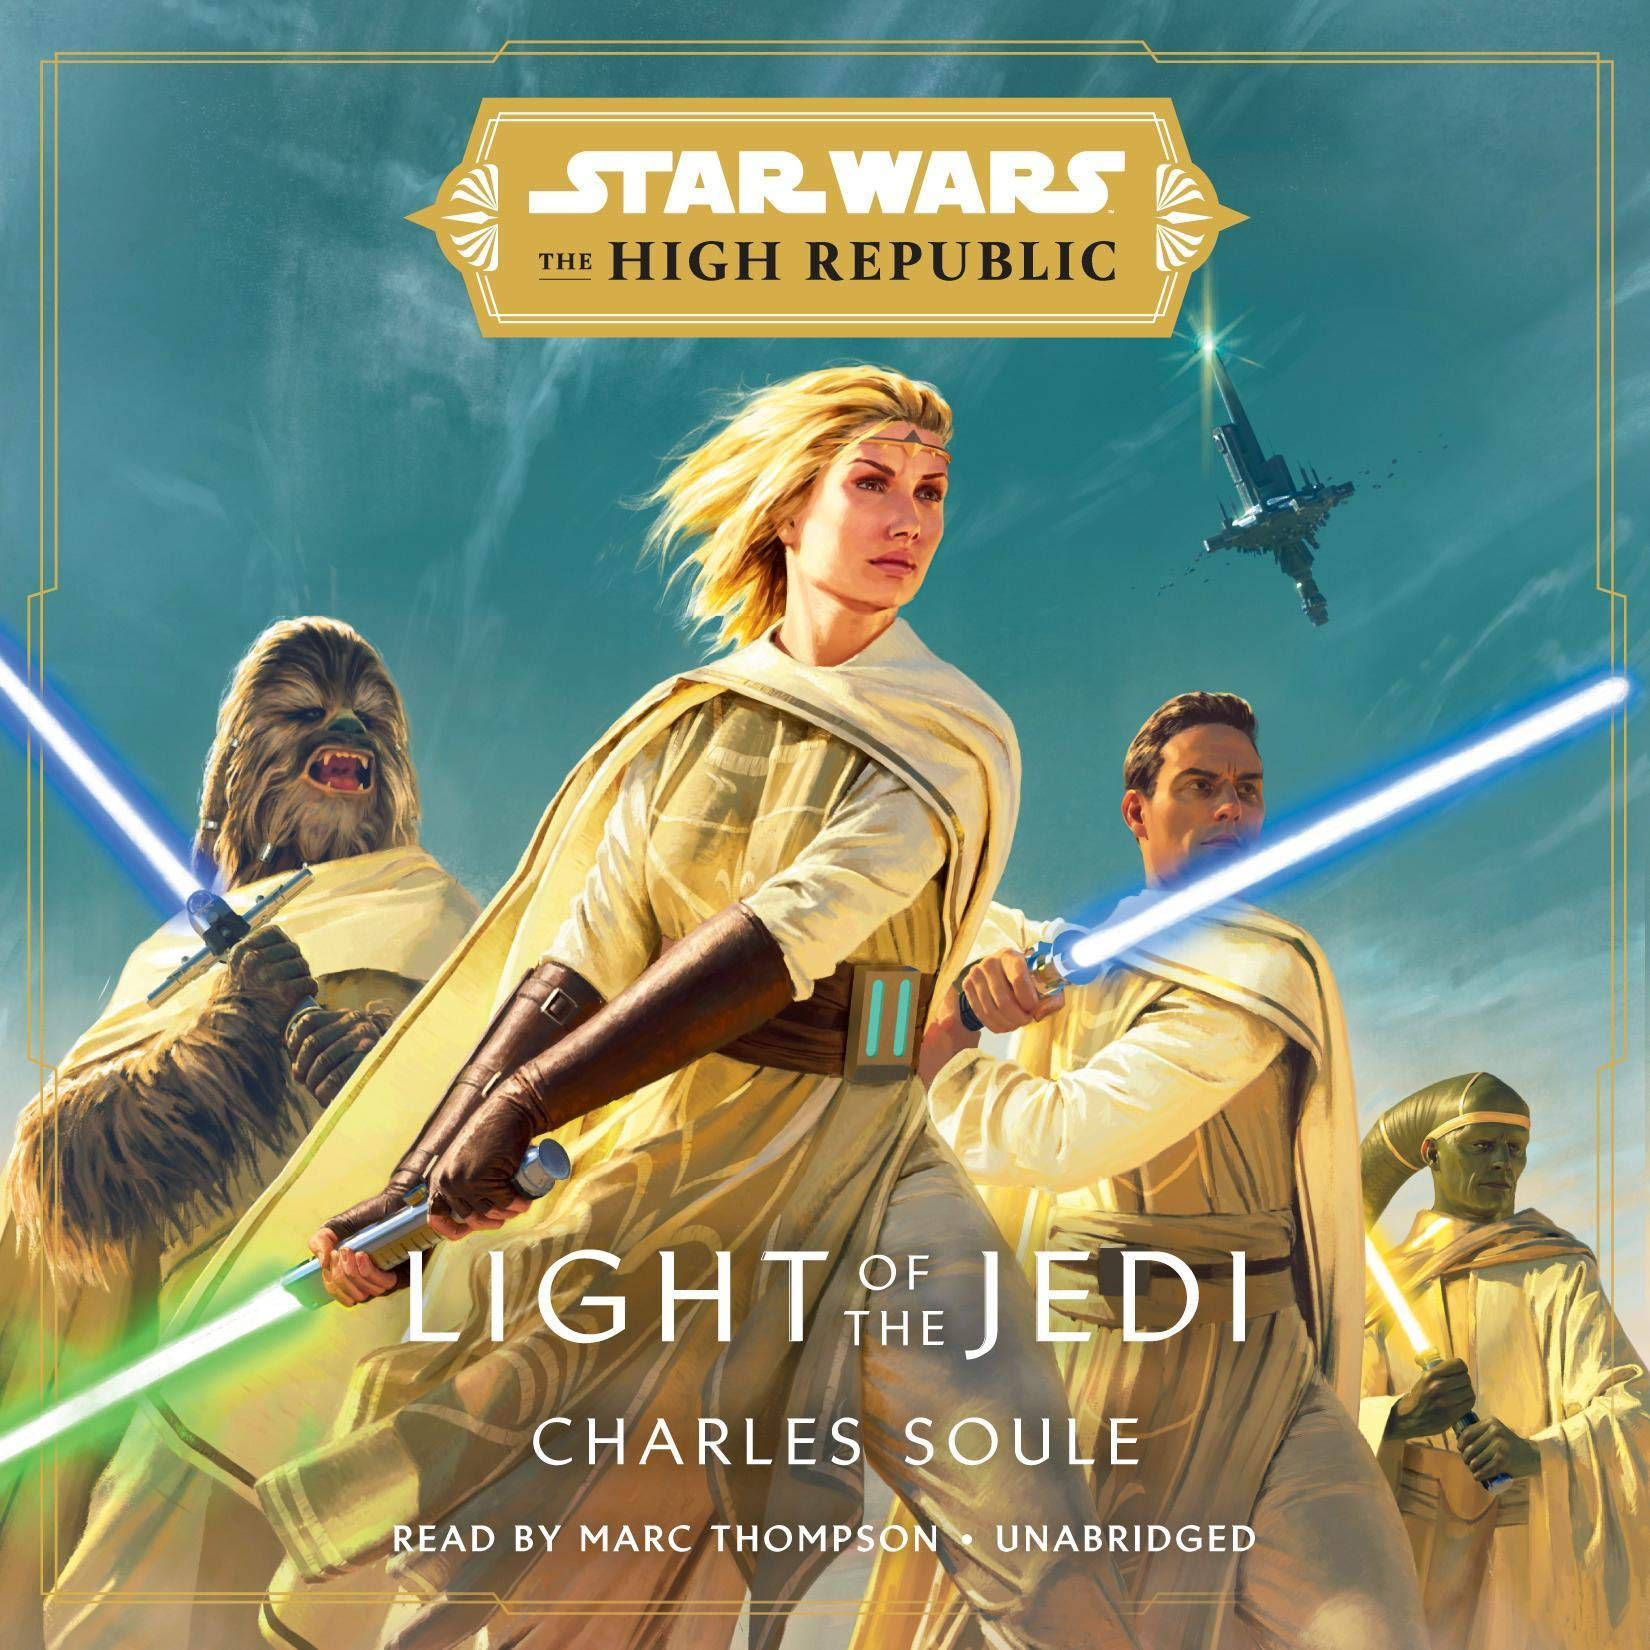 Cover image of Star Wars: Light of the Jedi by Charles Soule